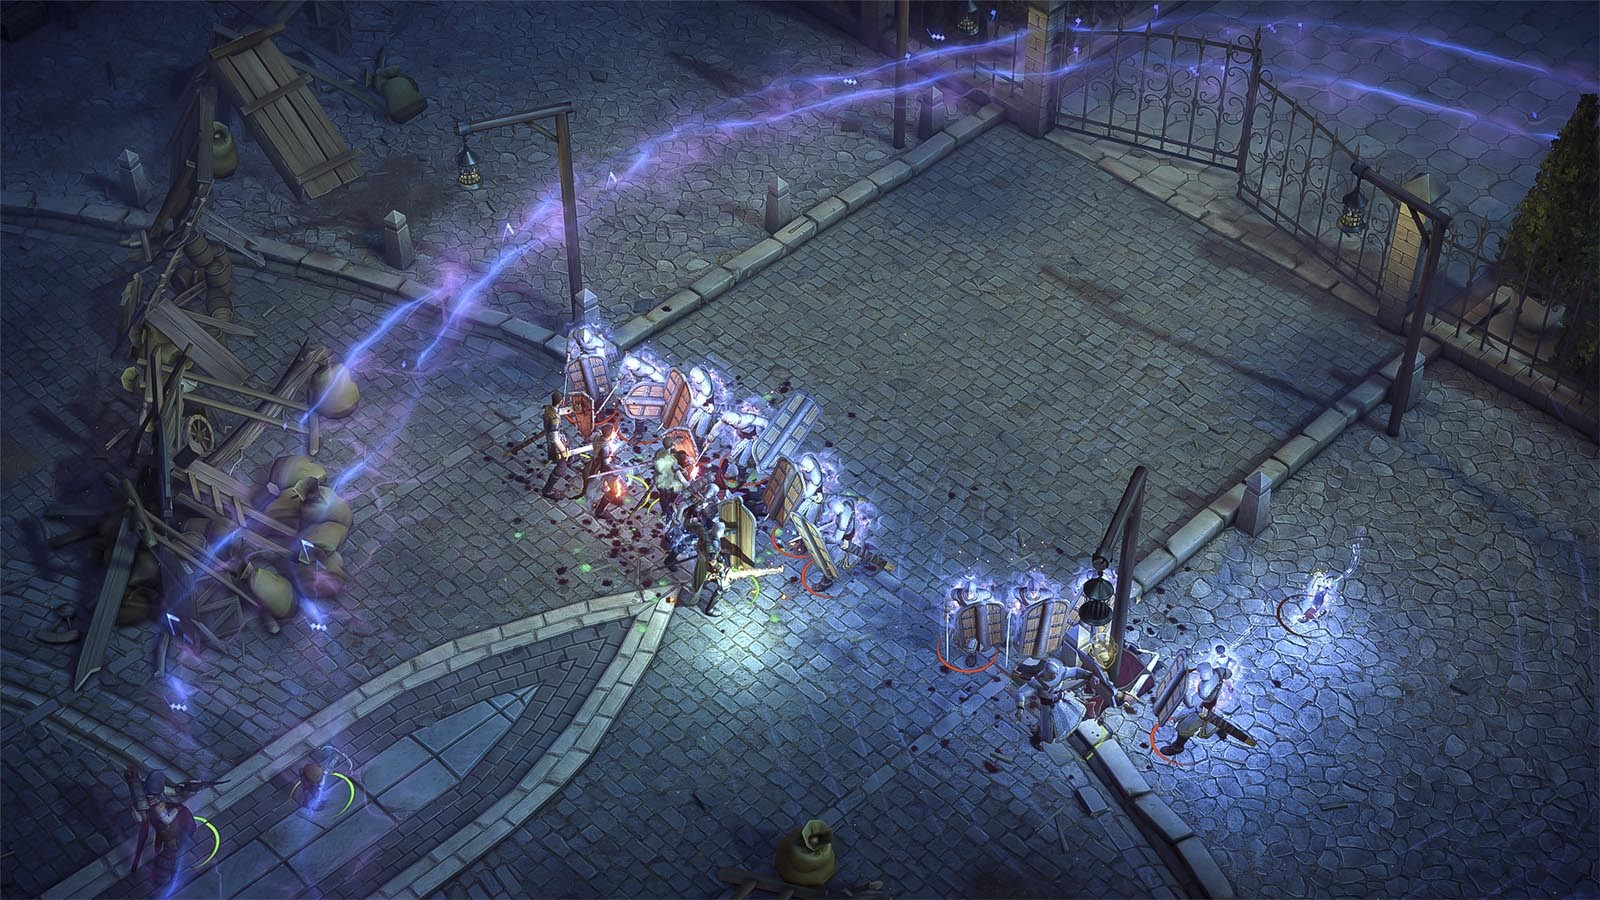 Pathfinder: Kingmaker - Royal Edition [Steam CD Key] for PC, Mac and Linux  - Buy now